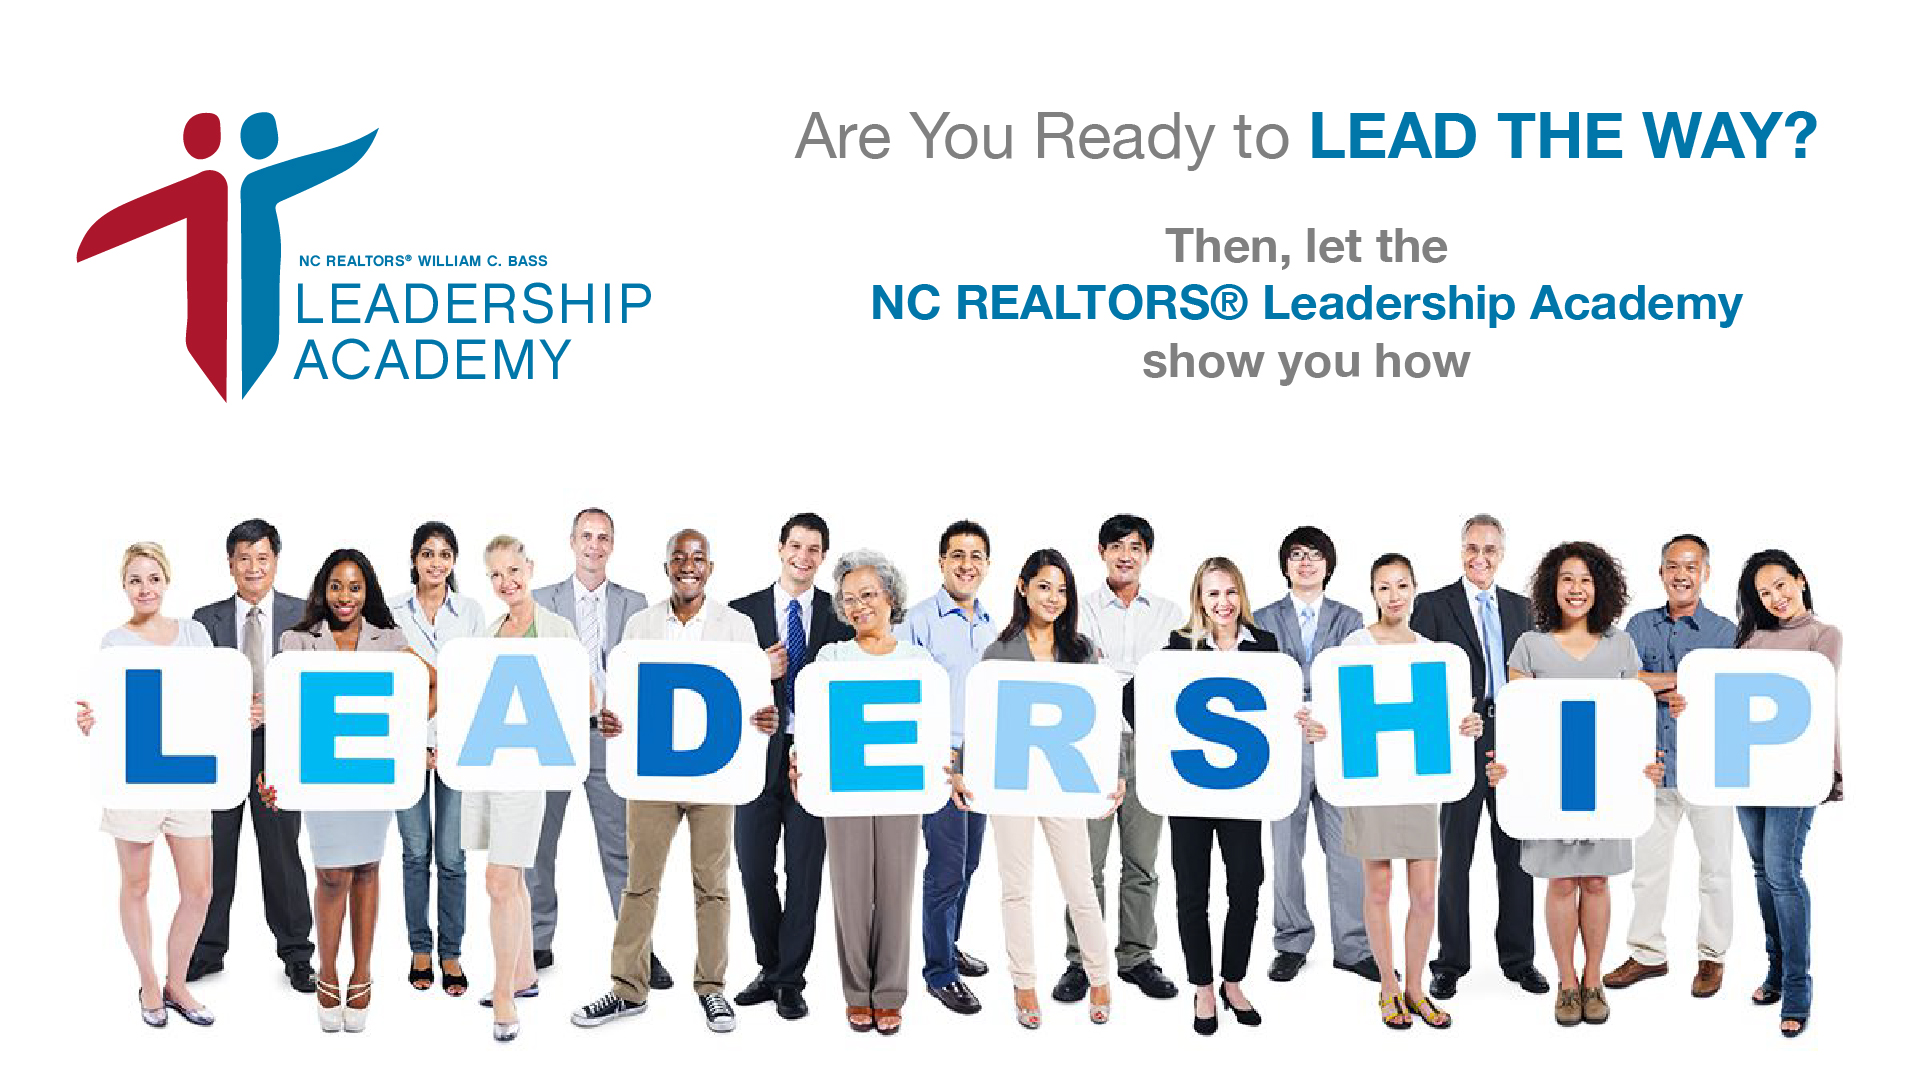 Image: Are you ready to lead the way? Then let the NC Realtors Leadership Academy show you how.